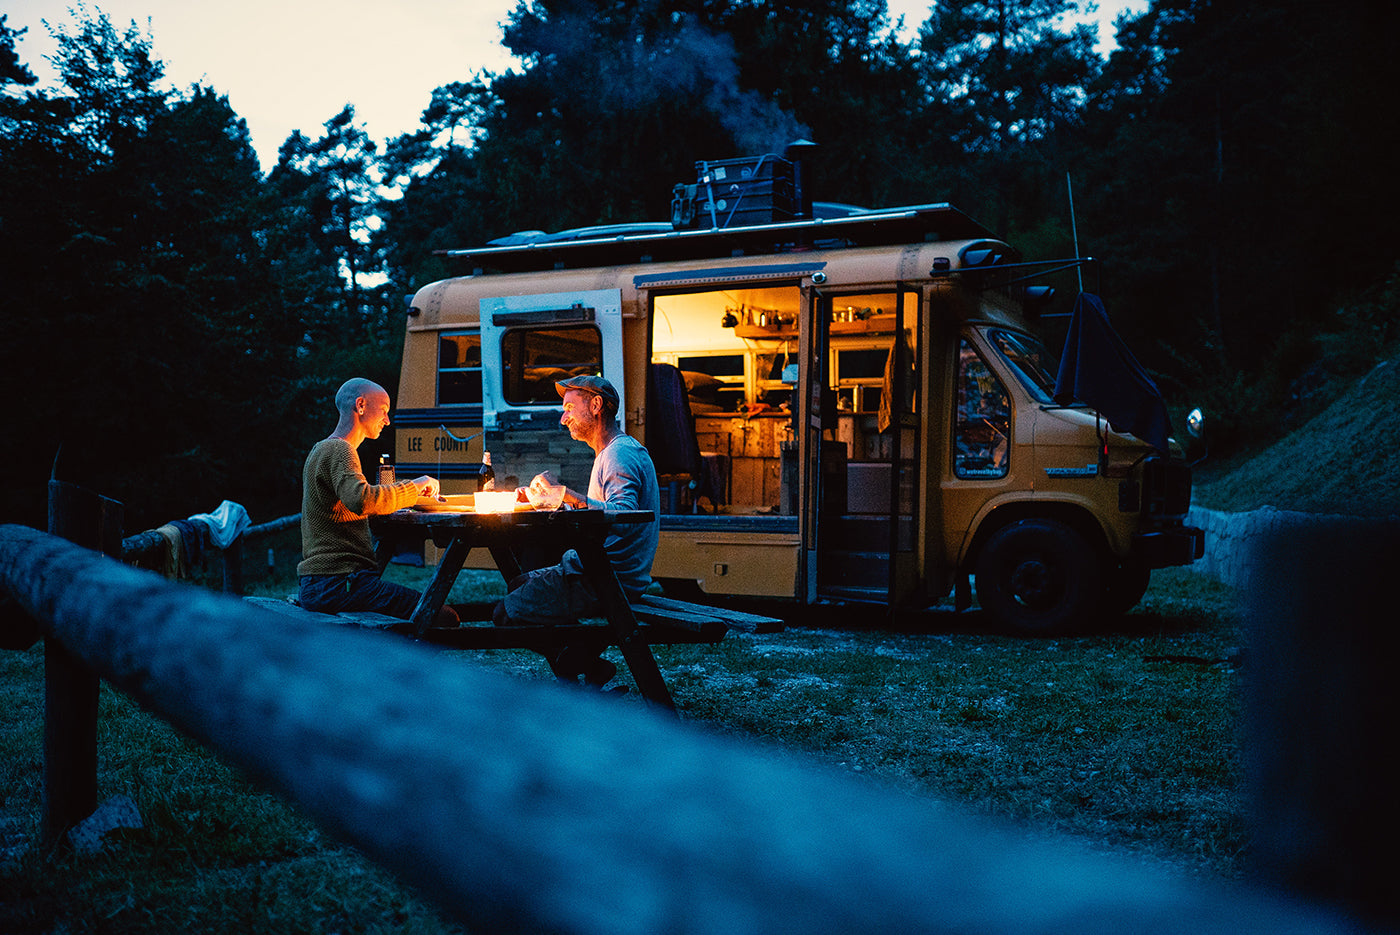 Kai Branss and his partner Julis sitting in front of their remodelled bus during night time. (Photo: Kai Branss)